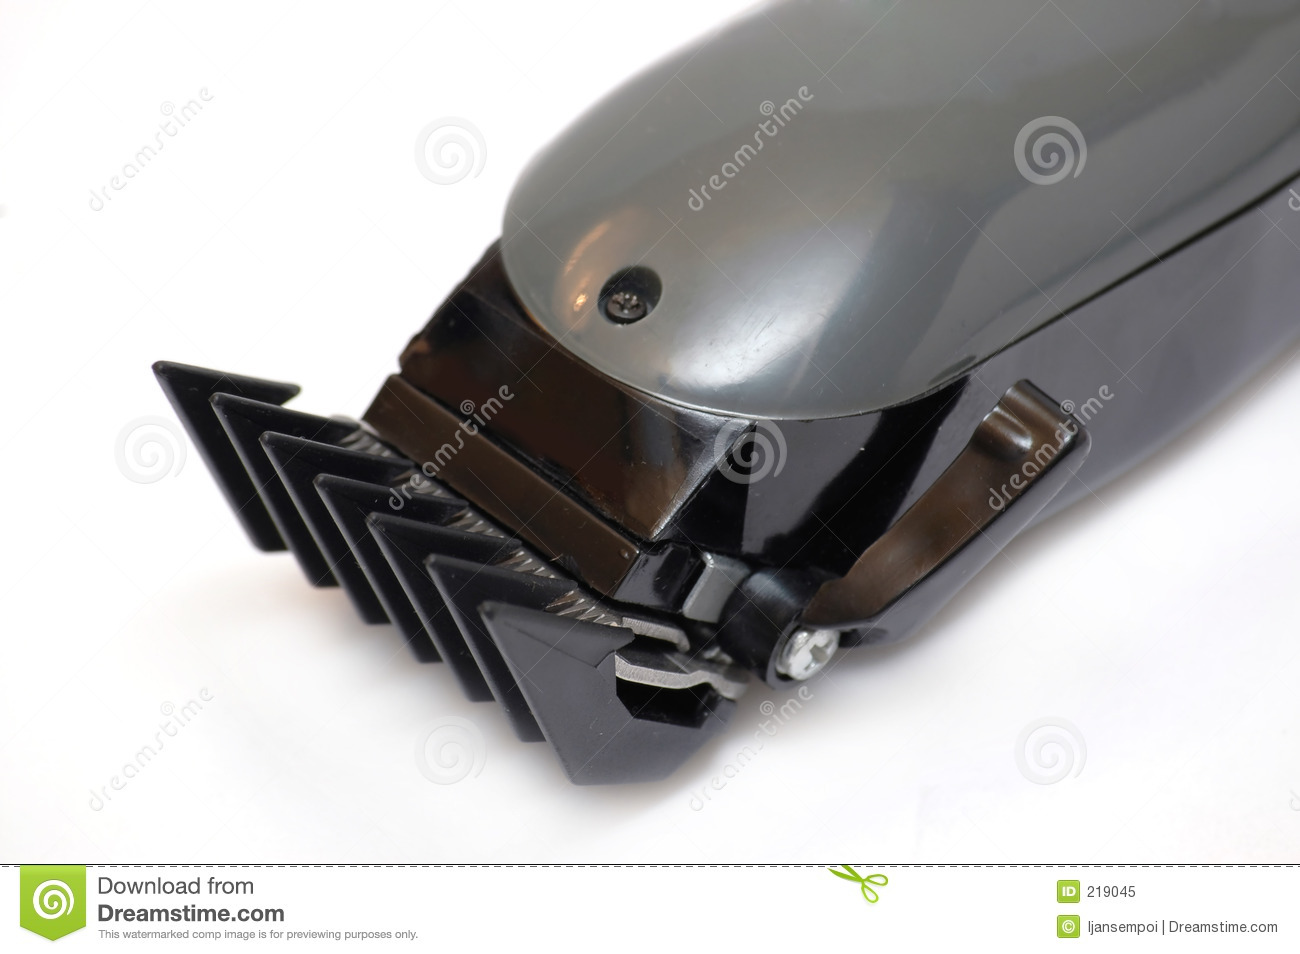 Hair Cutter : Hair Cutter Royalty Free Stock Photo - Image: 219045